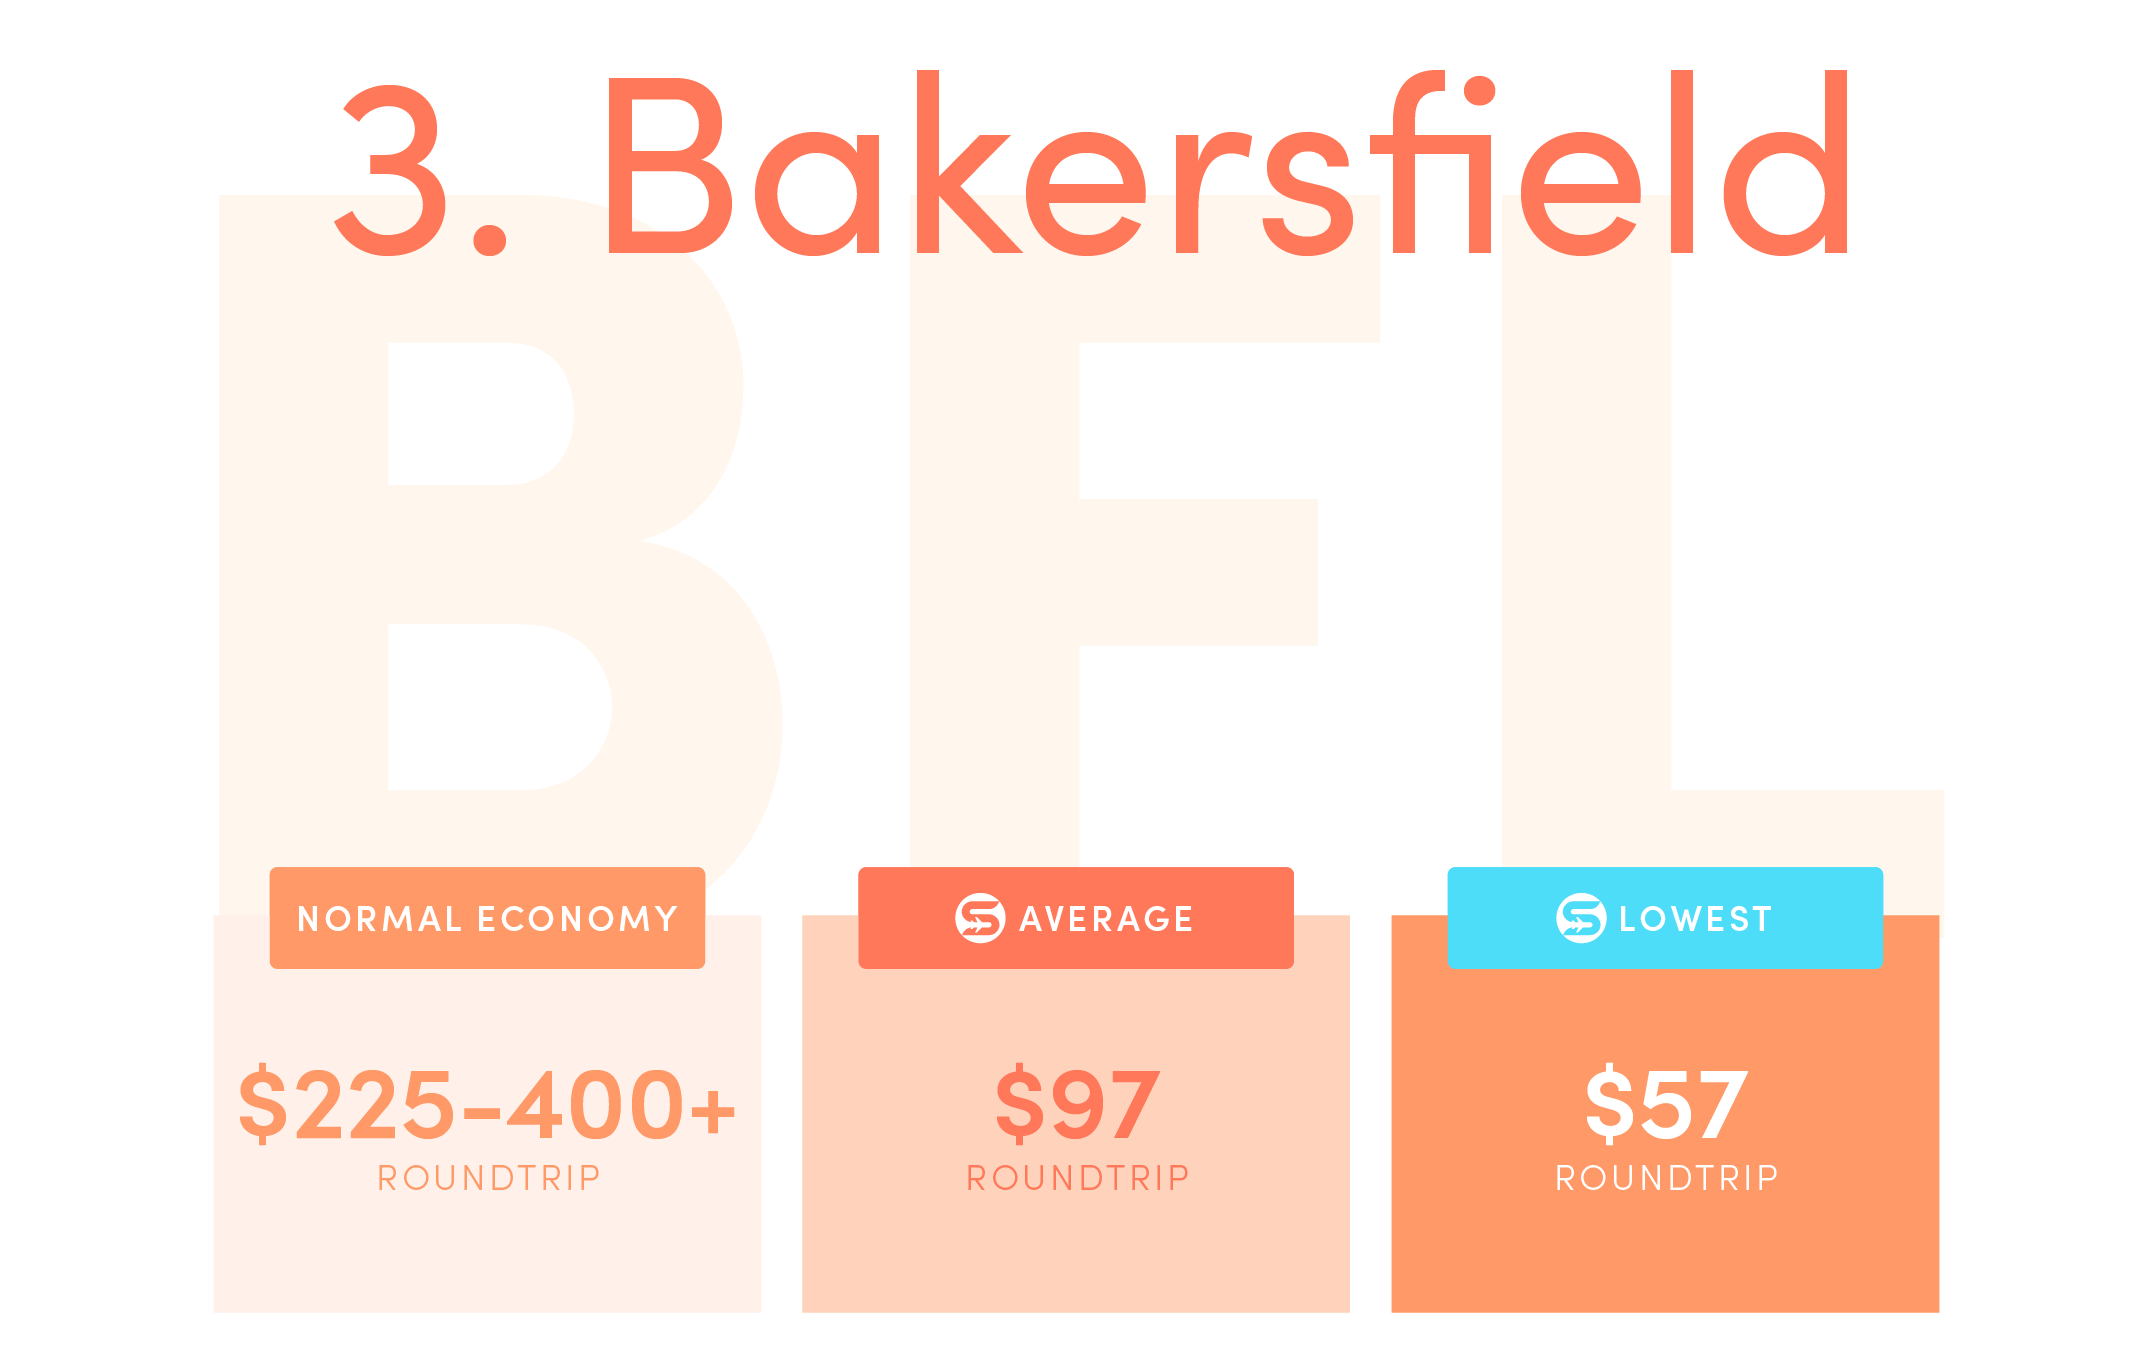 Bakersfield (BFL).Normal economy price from the US: $225-$400+ roundtrip.Average Scott's Cheap Flights economy price: $97 roundtrip.Lowest Scott's Cheap Flights price in 2021: $57 roundtrip.